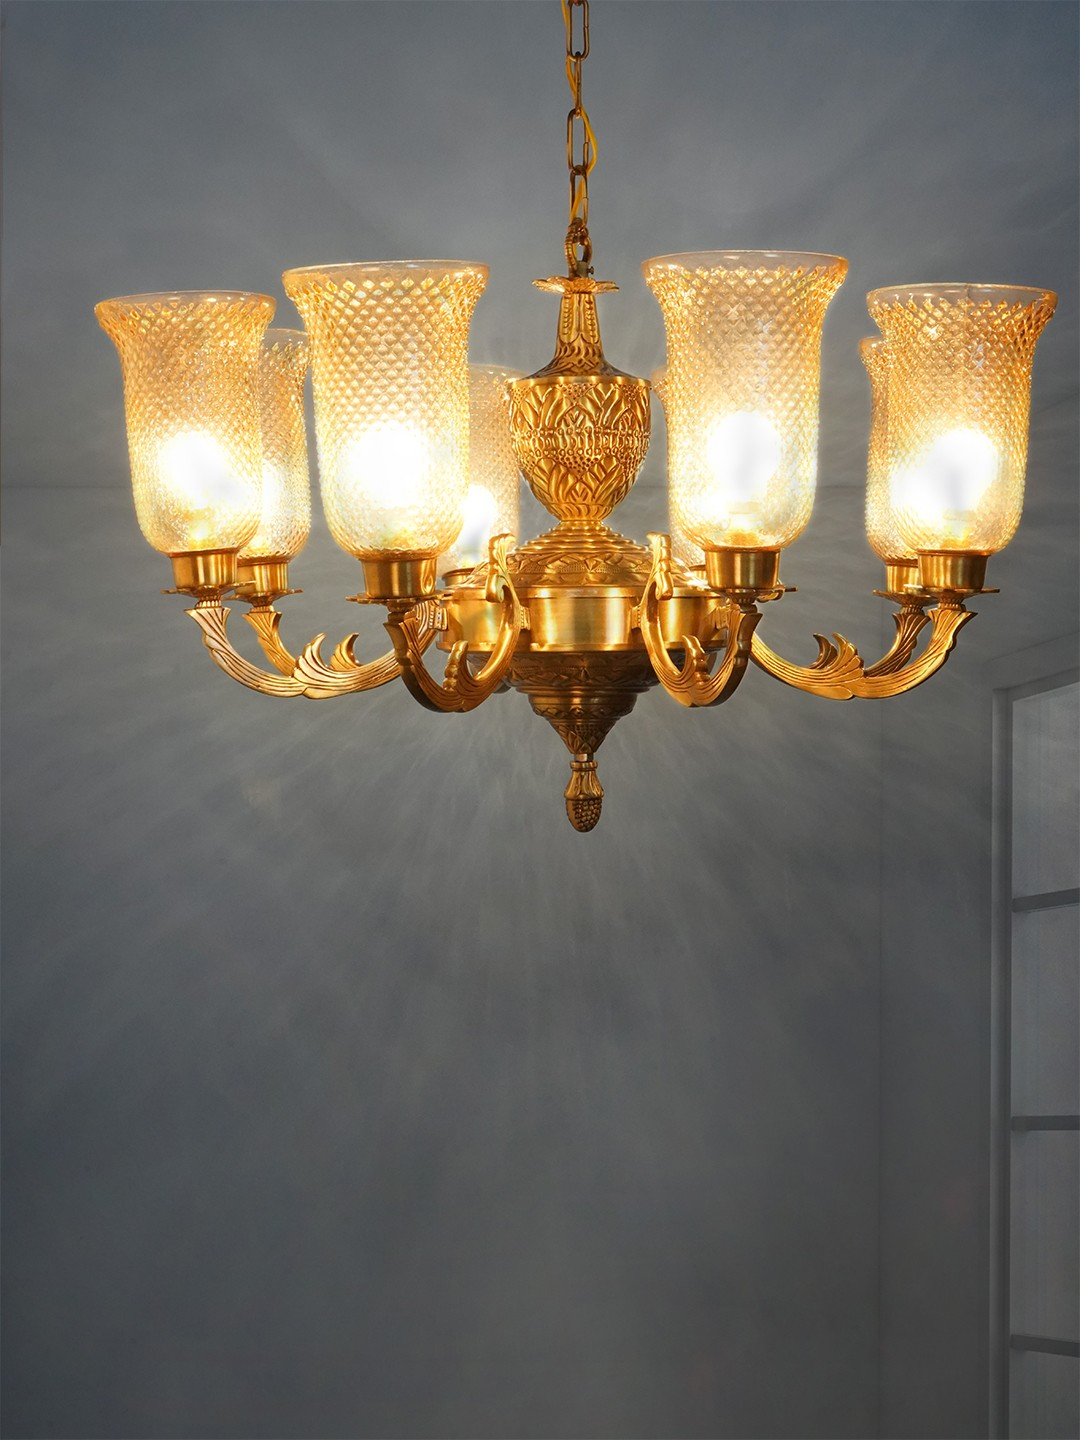 Jaisalmer 8 Lights Brass Chandelier with Golden Lustrous Textured Glasses